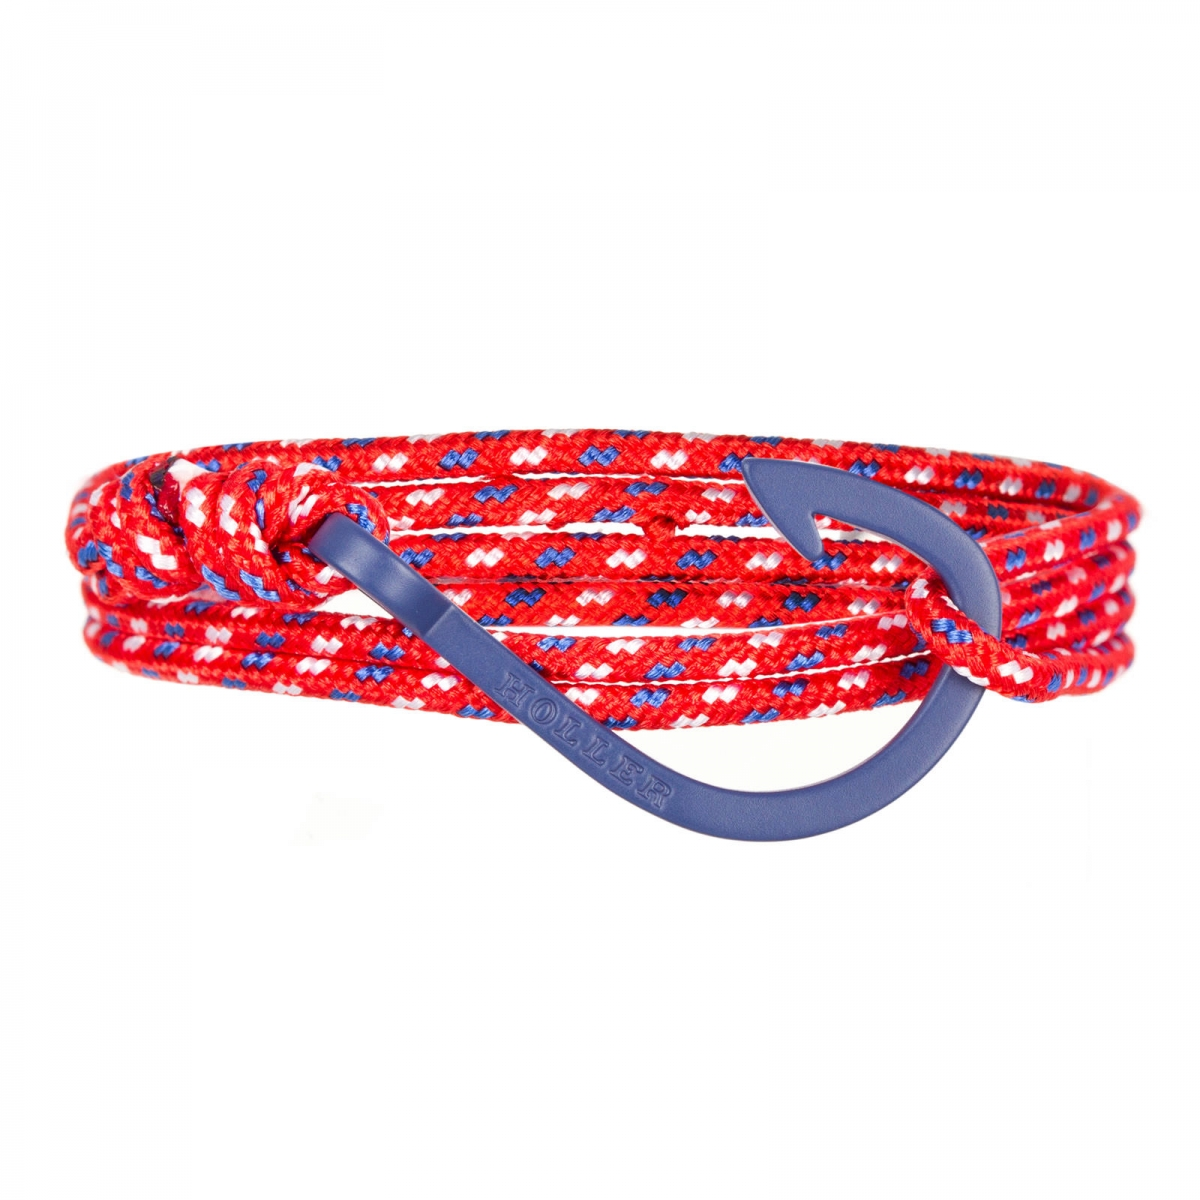 Kirby  Blue Sandblasted Hook / Red, Blue and White Paracord Bracelet